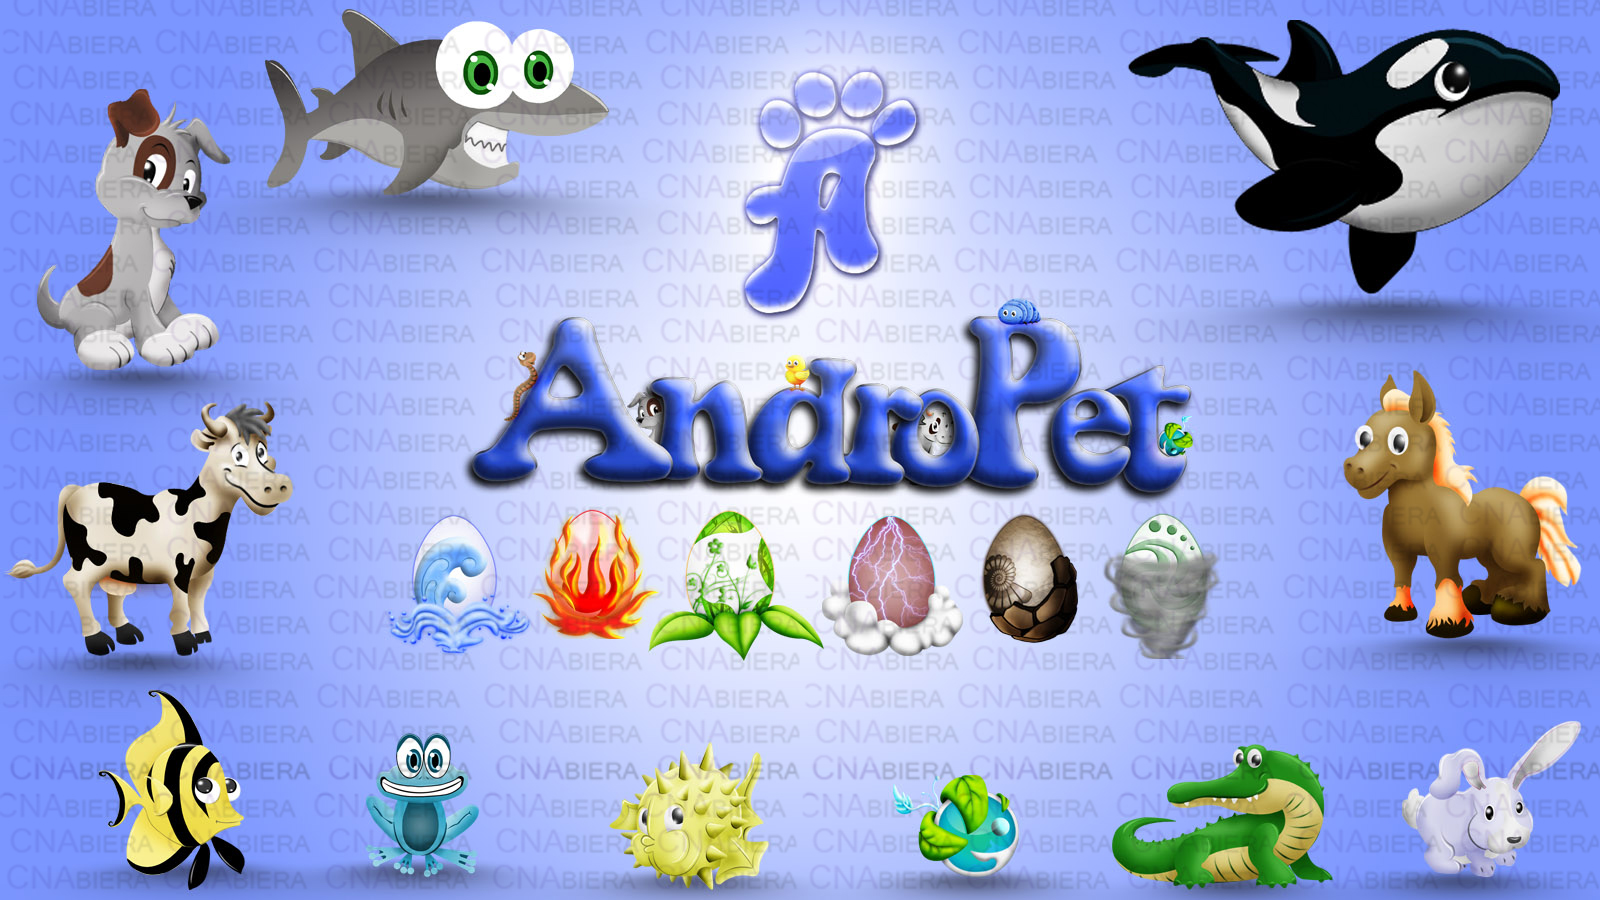 Andropet graphics design